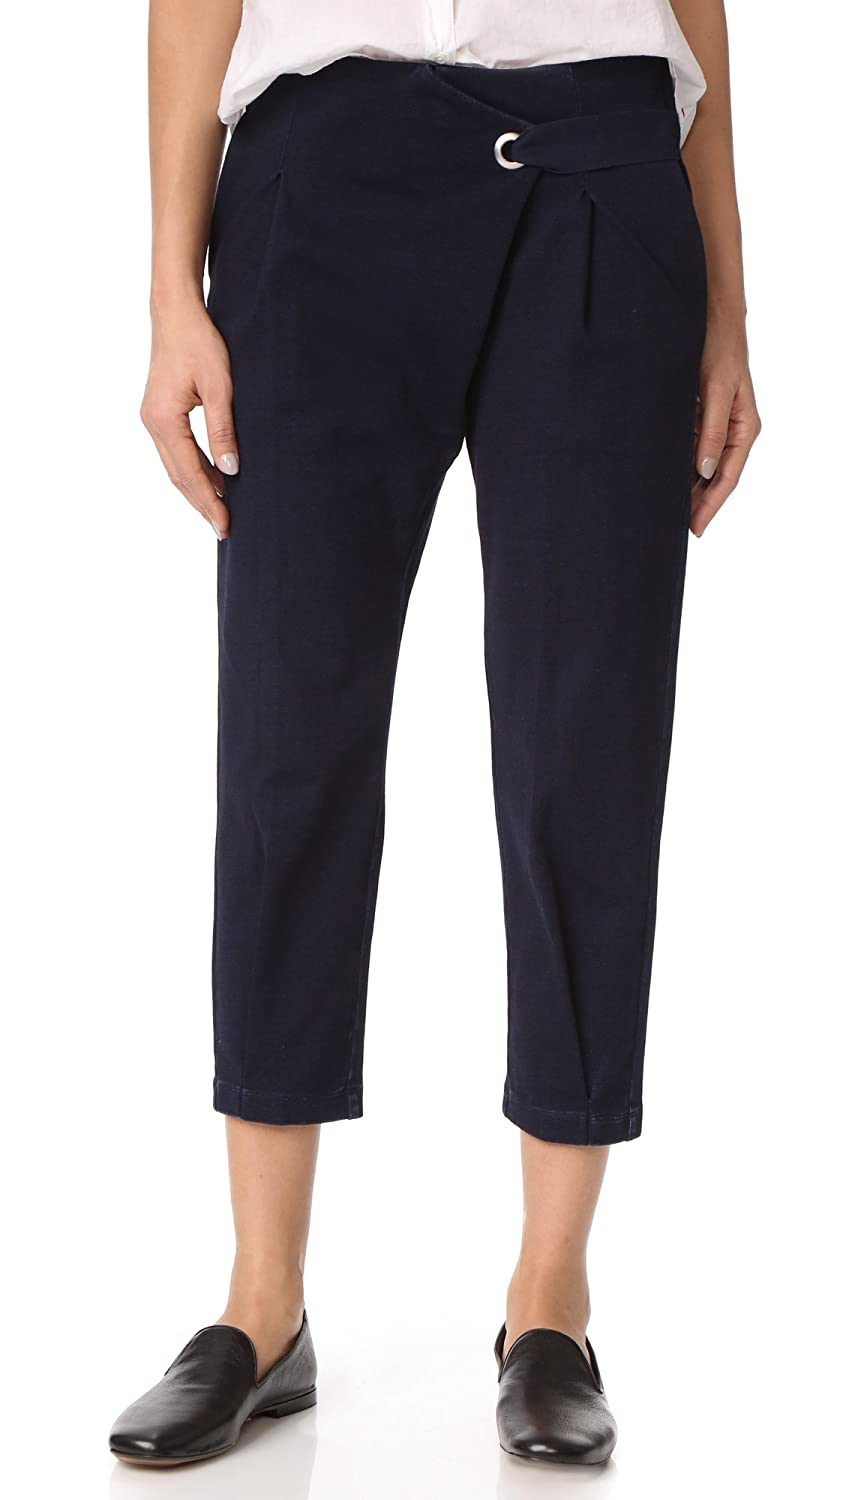 AG Women's Indigo Capsule Collection by AG Wren Pants